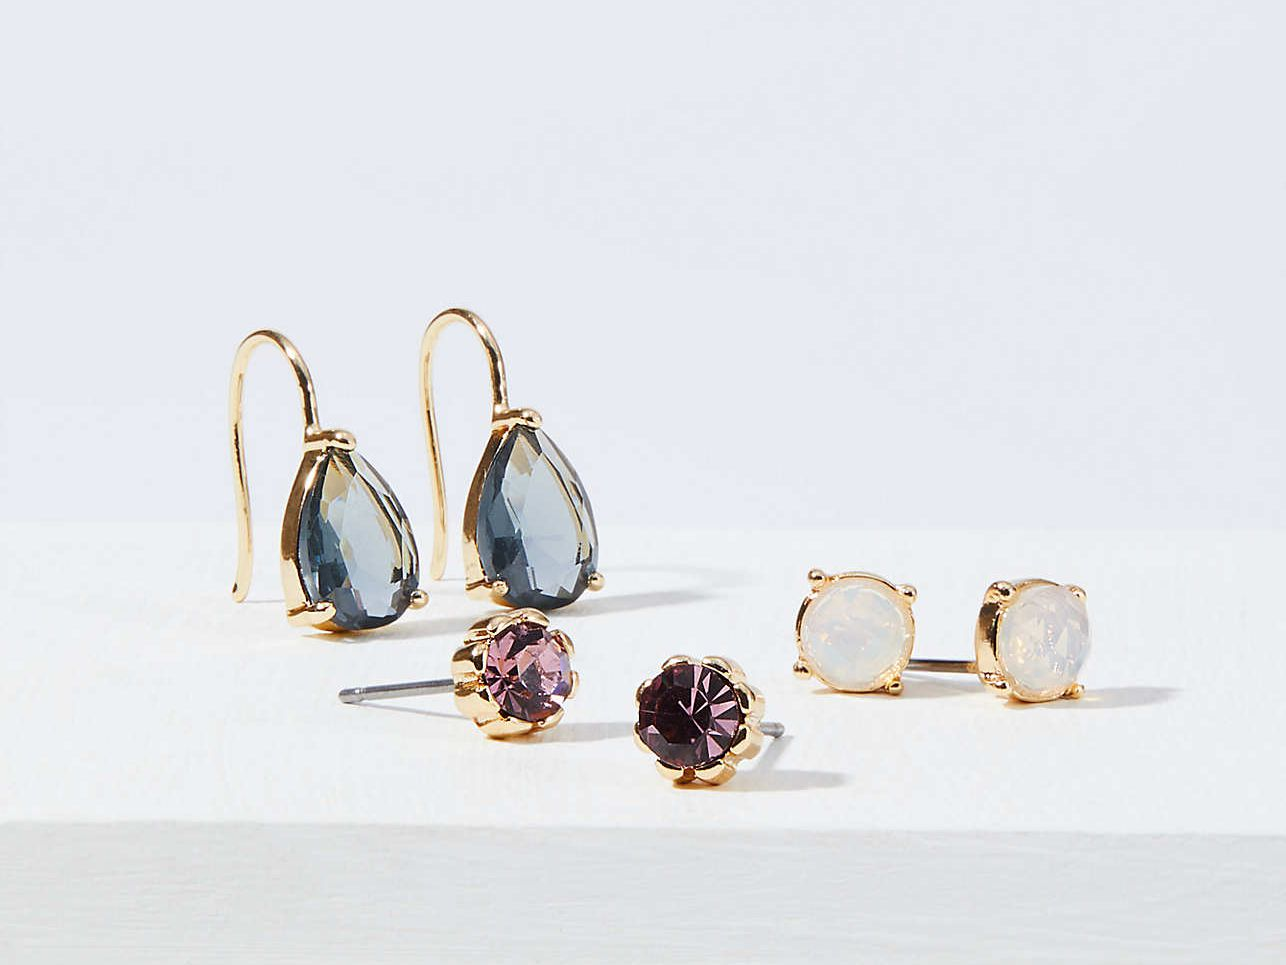 25 Pieces of Jewelry to Gift Your Bridesmaids, All Under $50